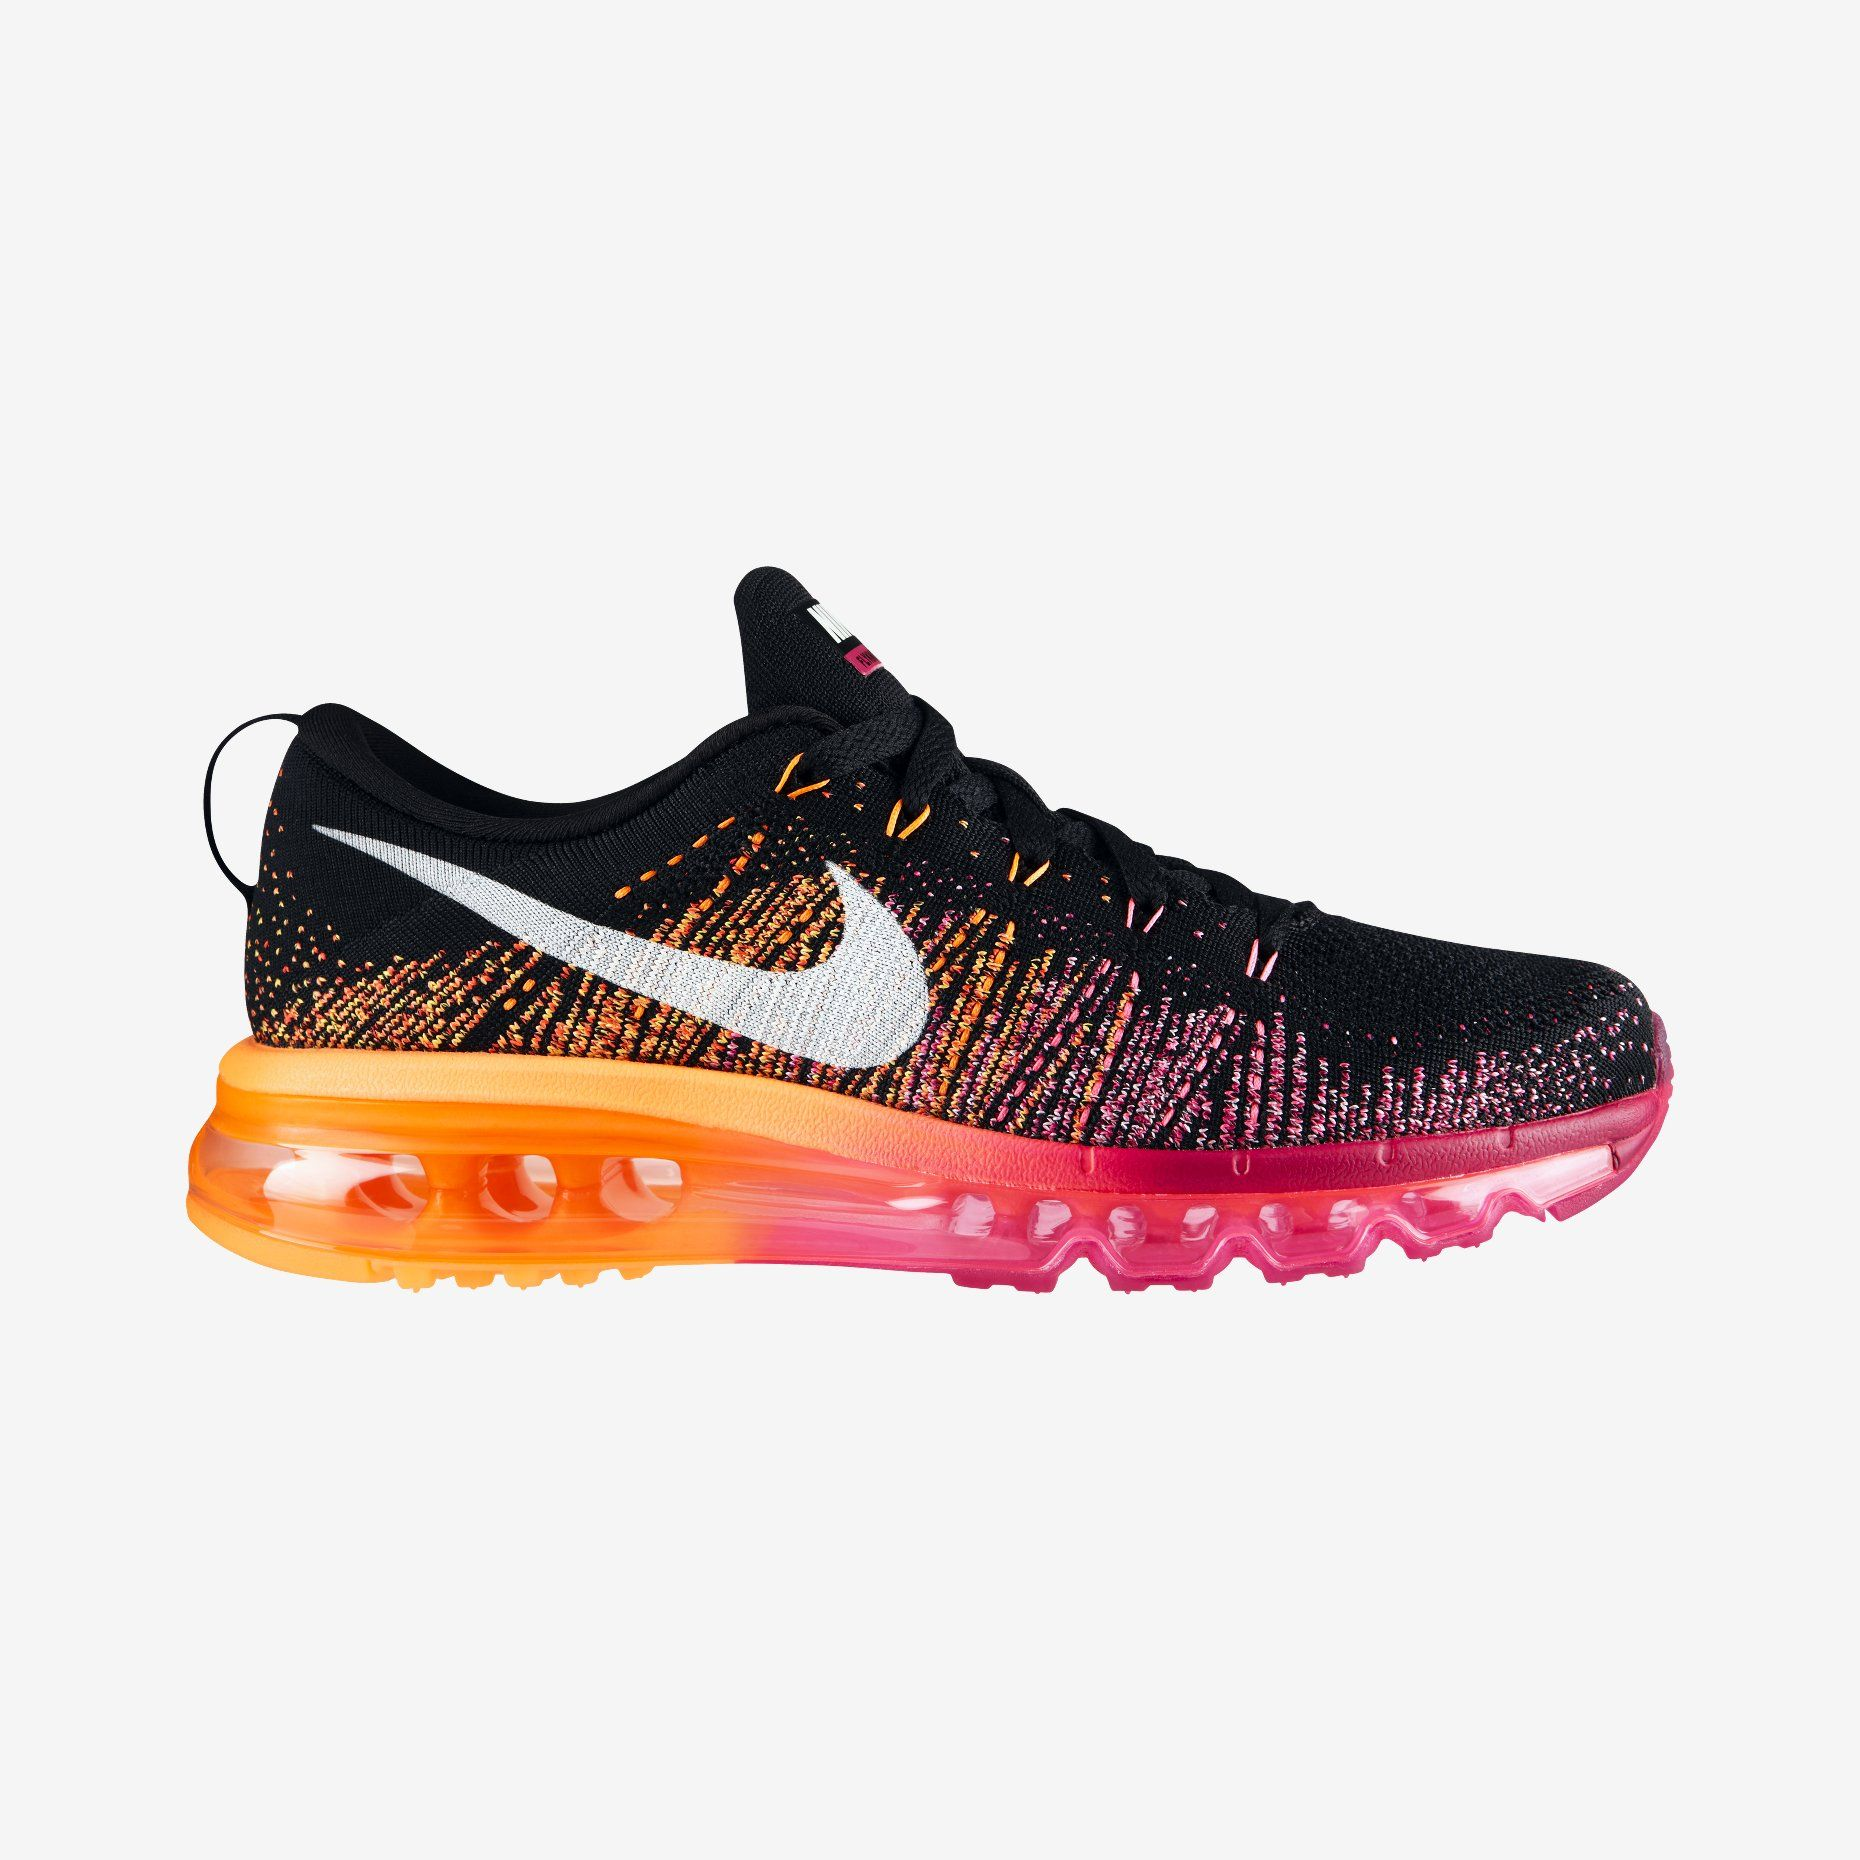 info for a914f bcdee Nike Store. Nike Flyknit Air Max Zapatillas de running - Mujer